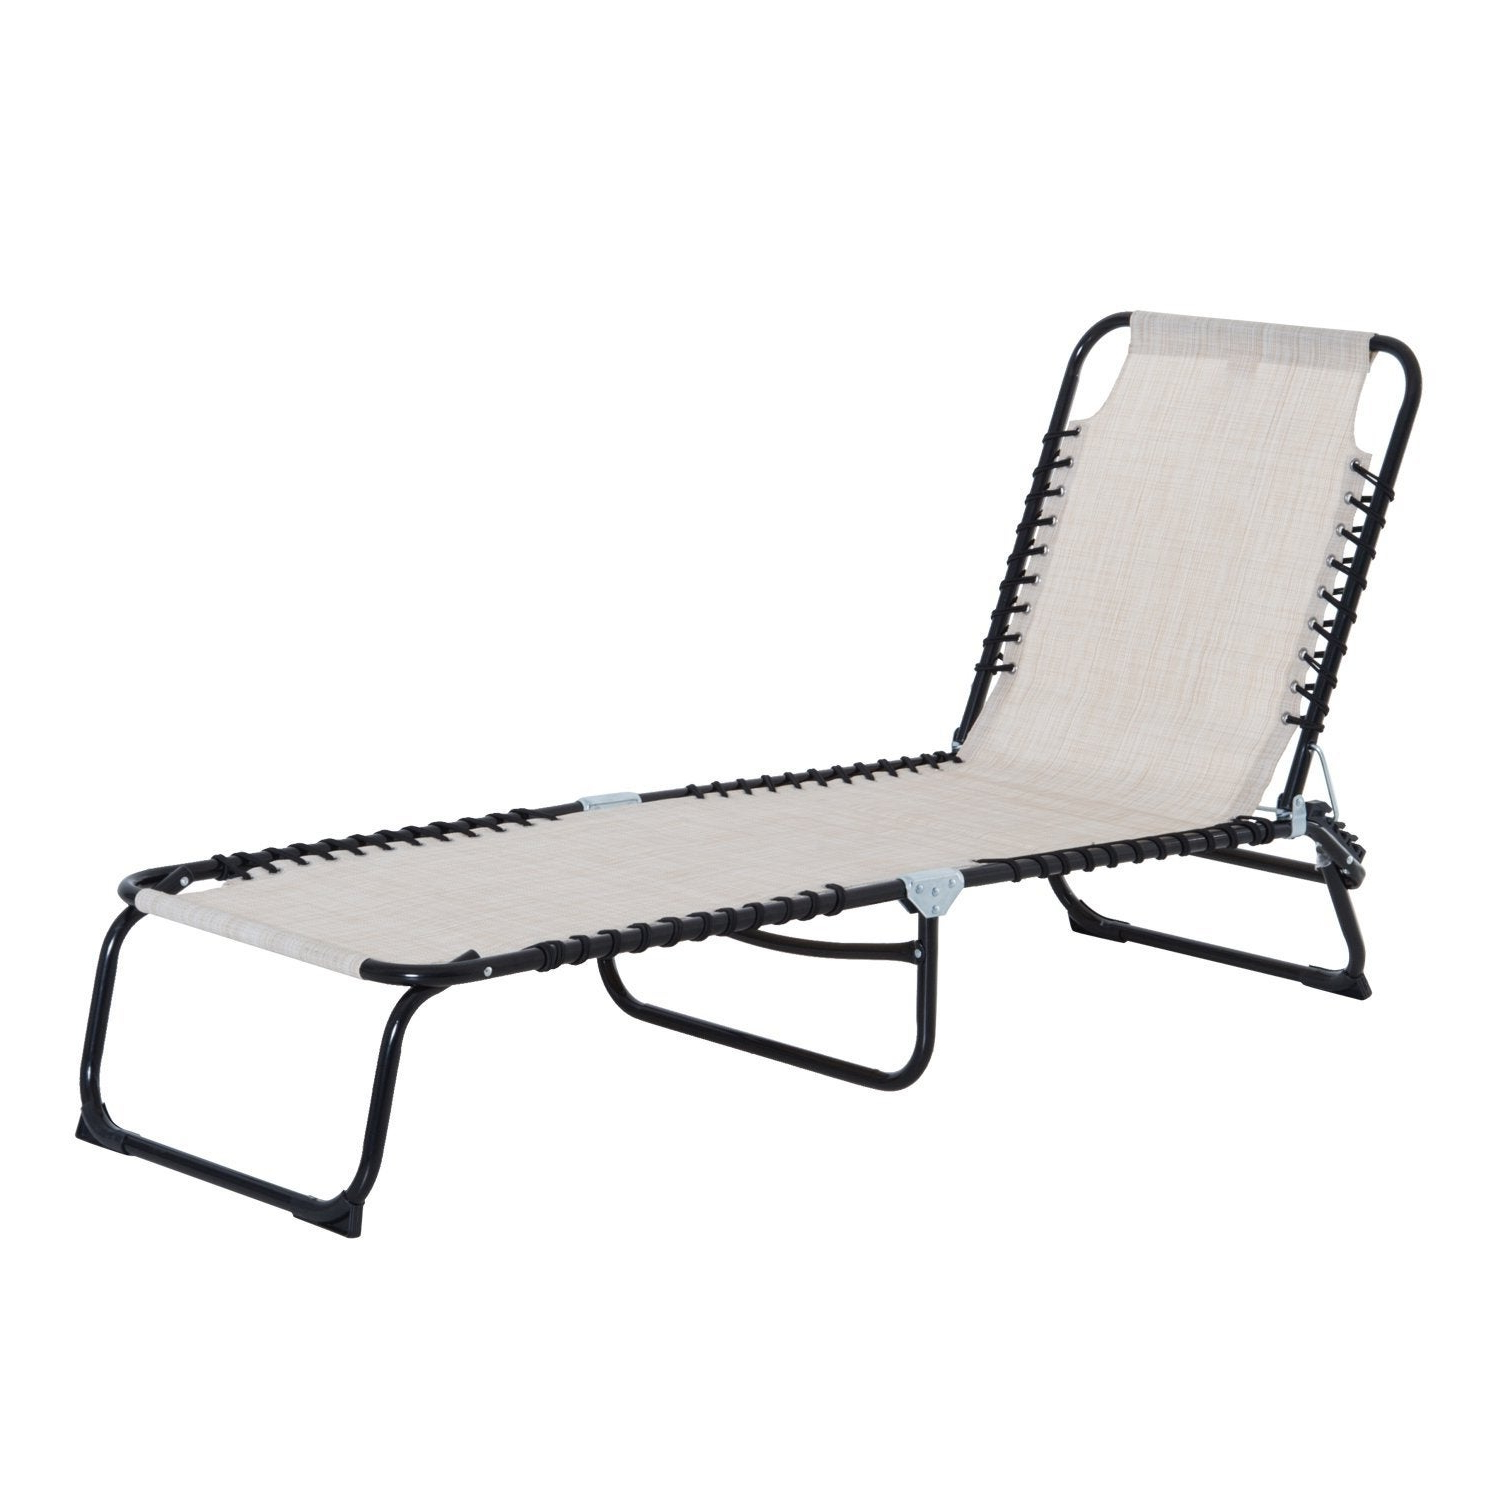 Best And Newest 3 Position Portable Folding Reclining Beach Chaise Lounges Pertaining To Outsunny 3 Position Portable Reclining Beach Chaise Lounge Folding Chair Outdoor Patio – Cream White (View 2 of 25)